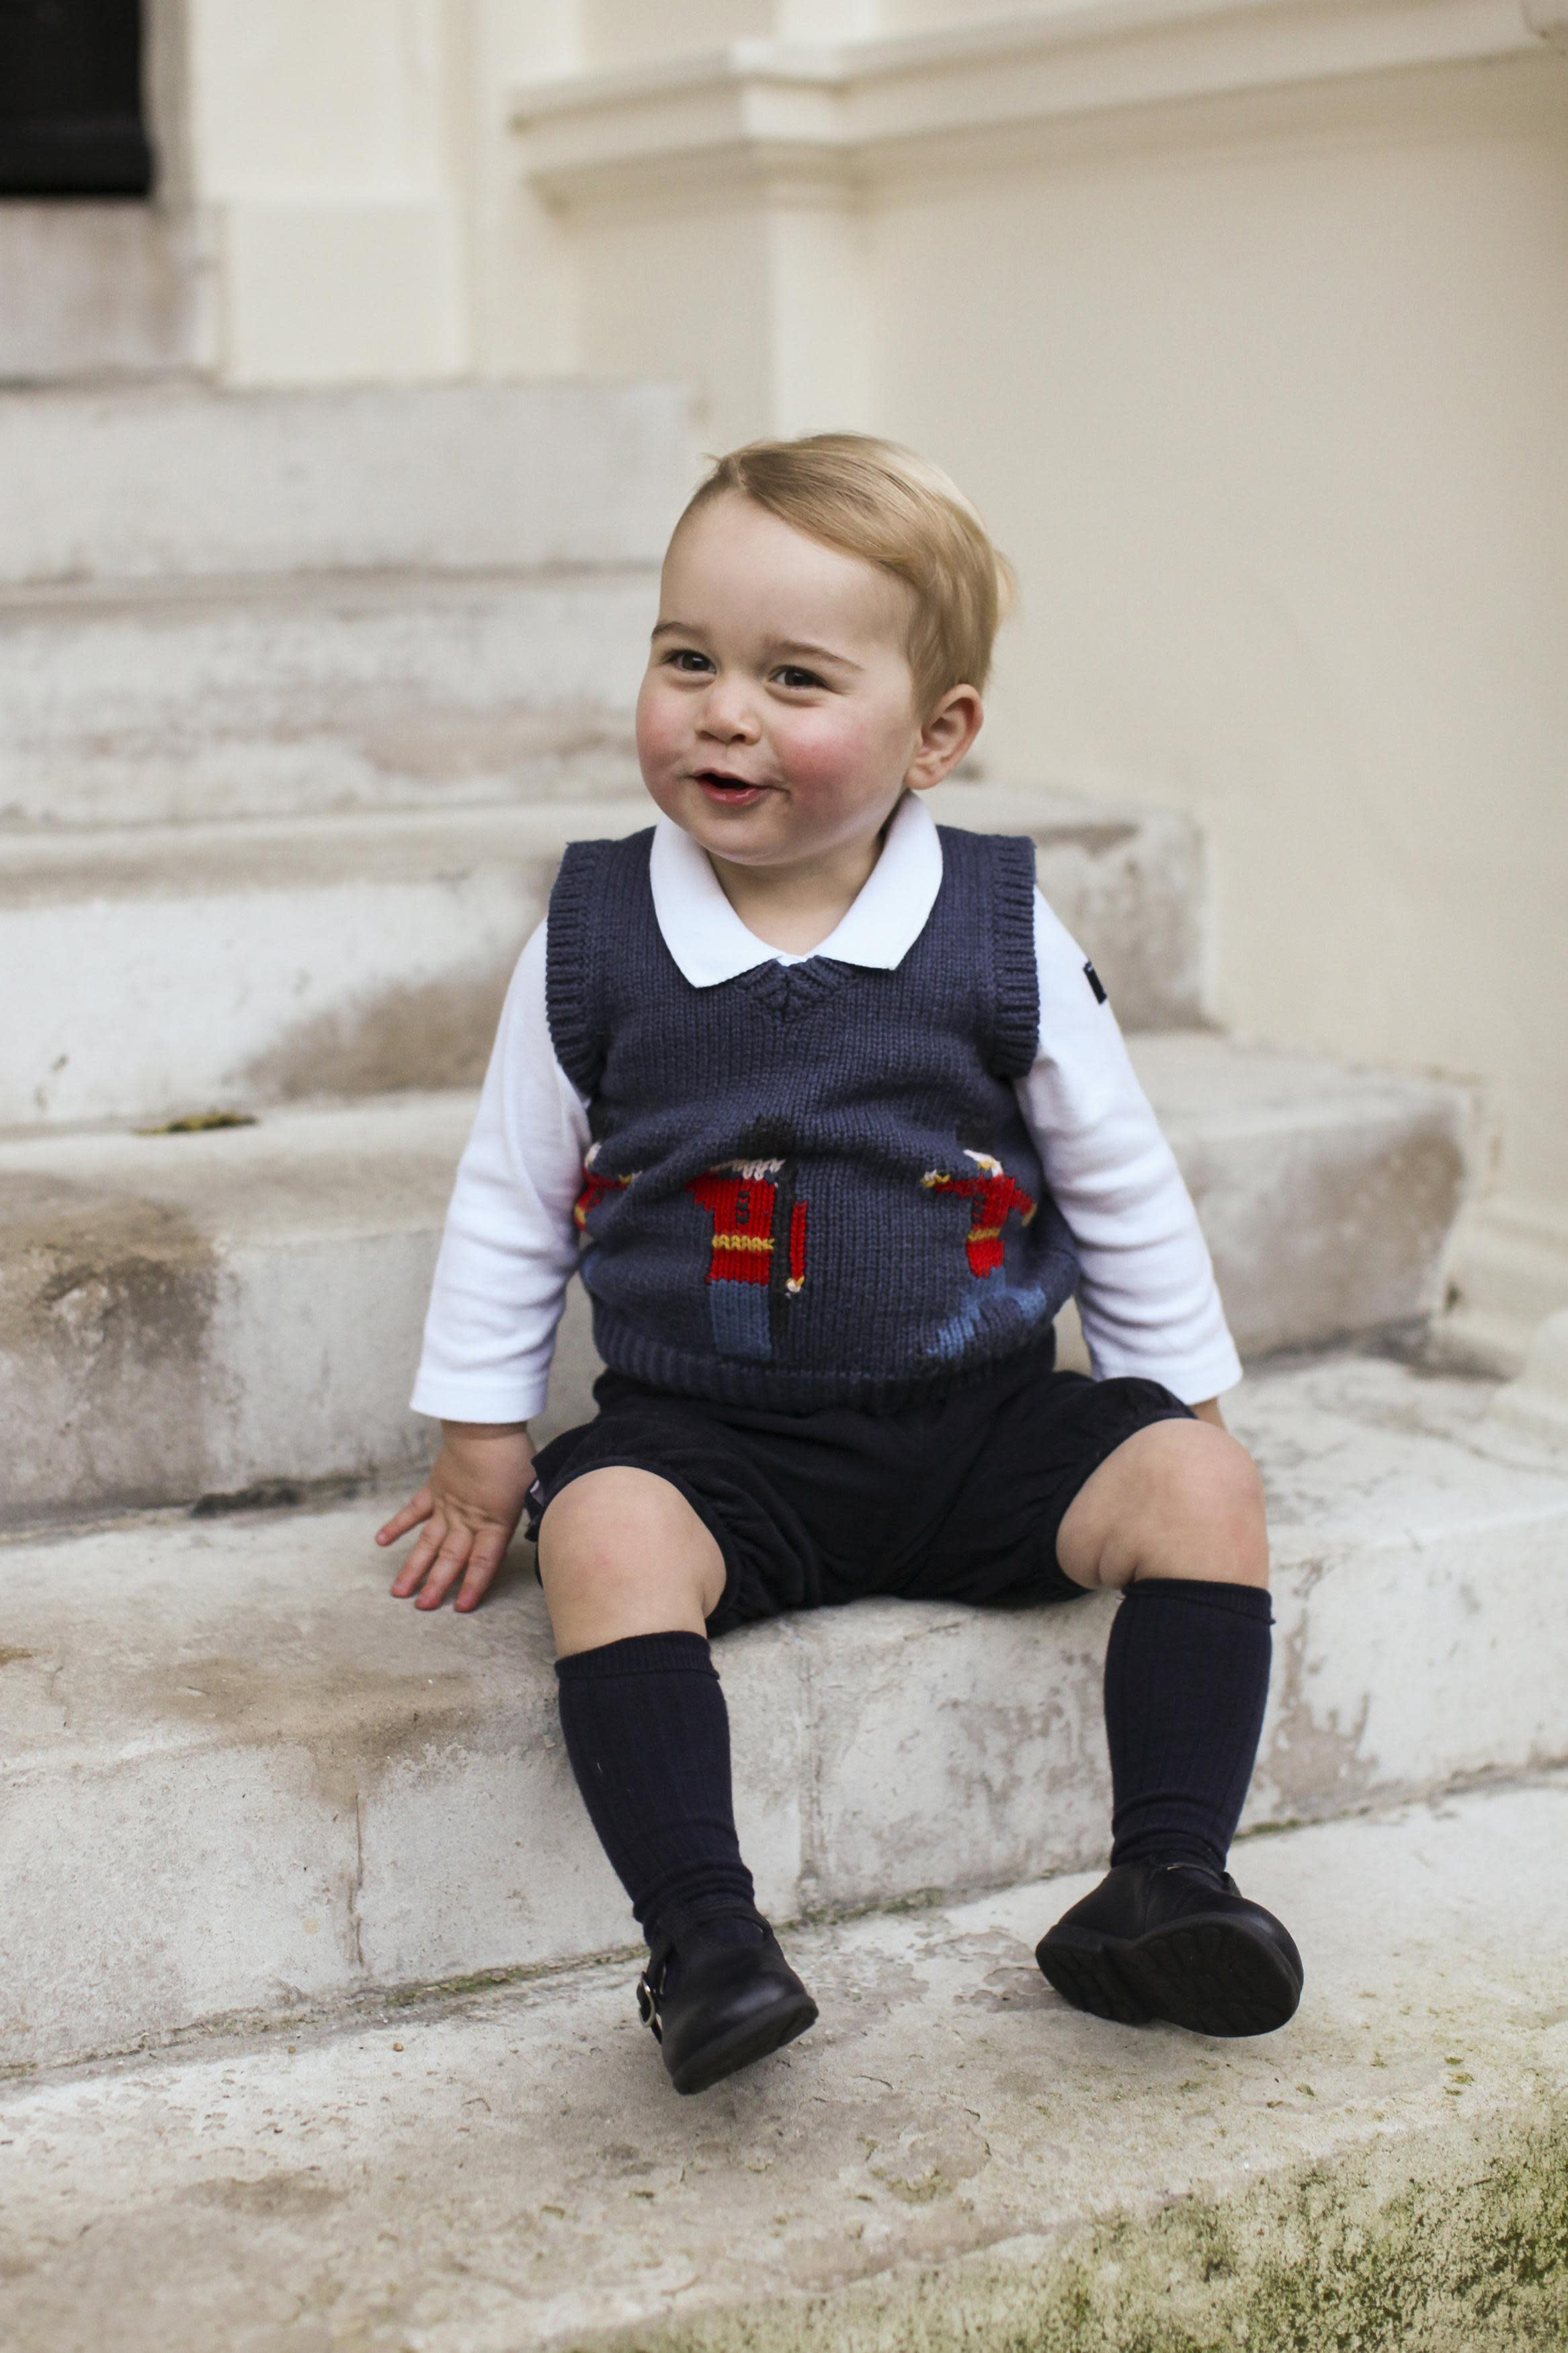 Britain's Prince George poses in a courtyard at Kensington Palace in London in this one out of three official Christmas photographs of him taken in late November and released on December 13, 2014. REUTERS/TRH The Duke and Duchess of Cambridge/Handout via Reuters (BRITAIN - Tags: ROYALS ENTERTAINMENT SOCIETY TPX IMAGES OF THE DAY) ATTENTION EDITORS - THIS PICTURE WAS PROVIDED BY A THIRD PARTY. REUTERS IS UNABLE TO INDEPENDENTLY VERIFY THE AUTHENTICITY, CONTENT, LOCATION OR DATE OF THIS IMAGE. FOR EDITORIAL USE ONLY. NOT FOR SALE FOR MARKETING OR ADVERTISING CAMPAIGNS. THIS PICTURE IS DISTRIBUTED EXACTLY AS RECEIVED BY REUTERS, AS A SERVICE TO CLIENTS. NO SALES. NO ARCHIVES